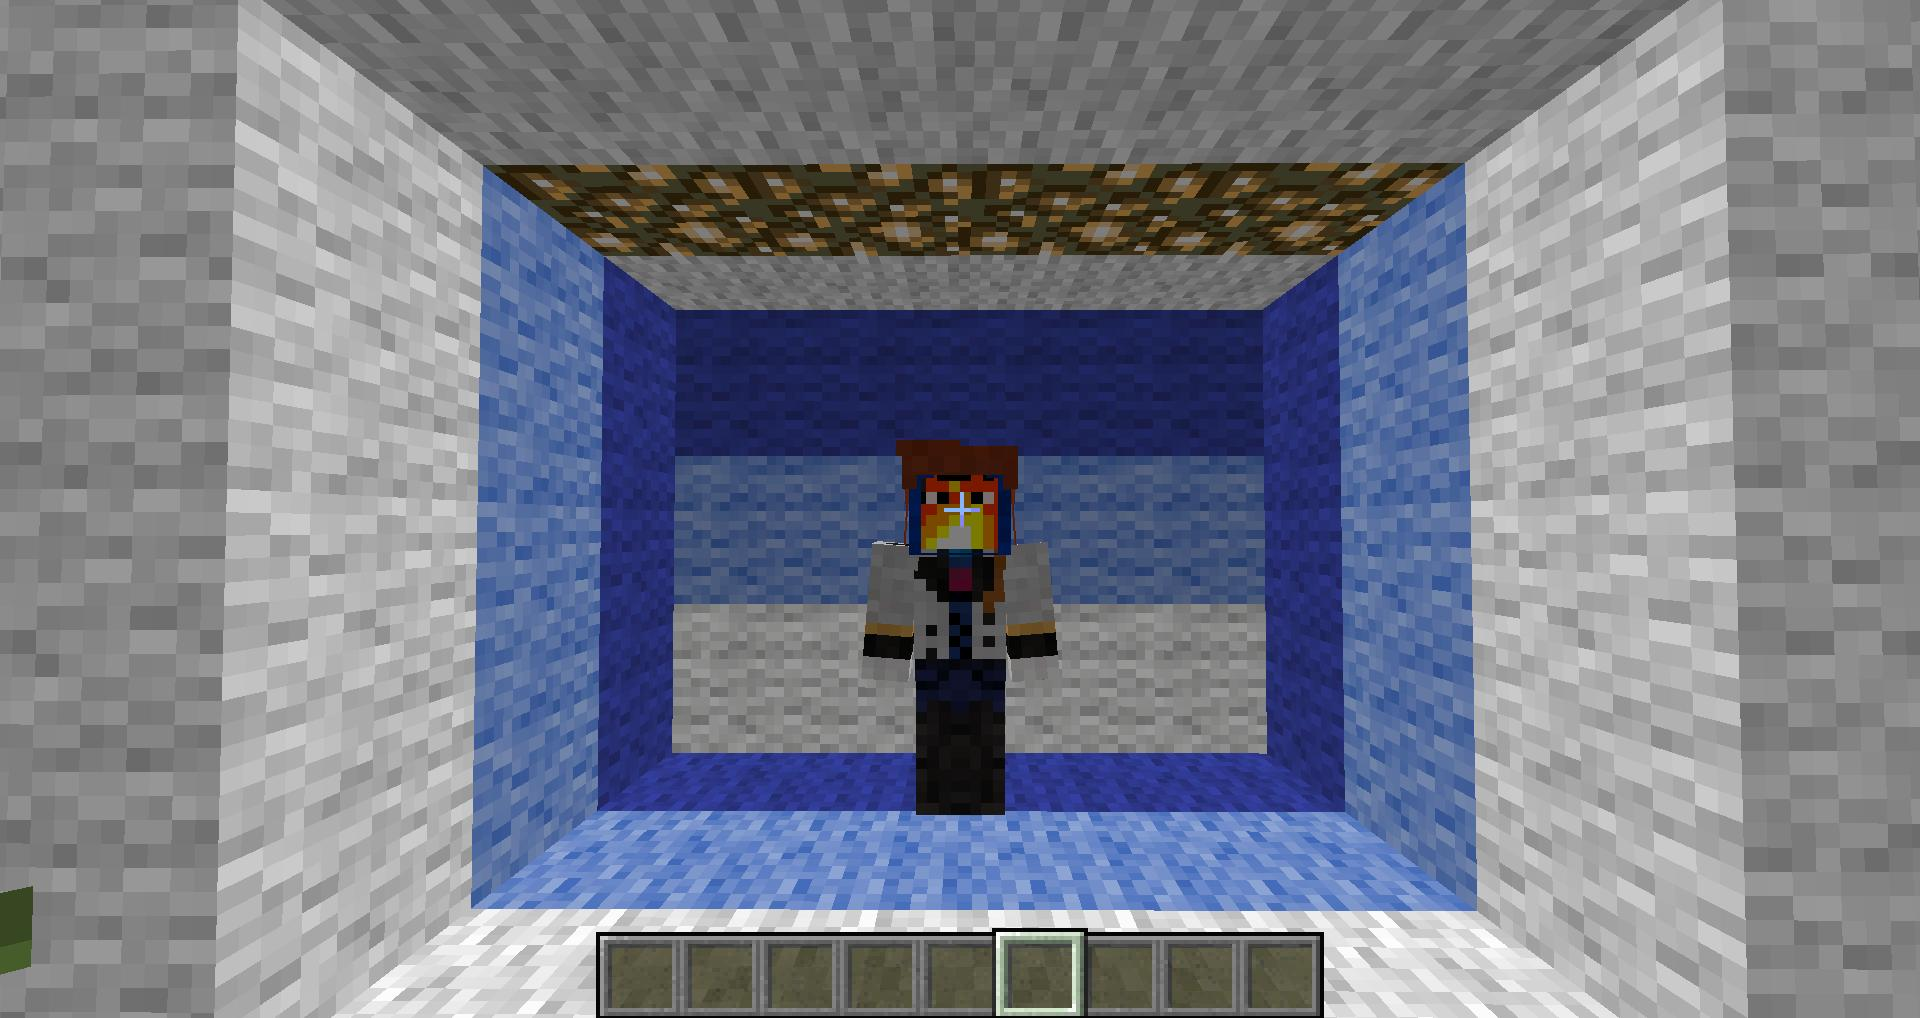 926581c305c05060bacb215a2bb71911 Frozencraft Mod for Minecraft 1.7.10